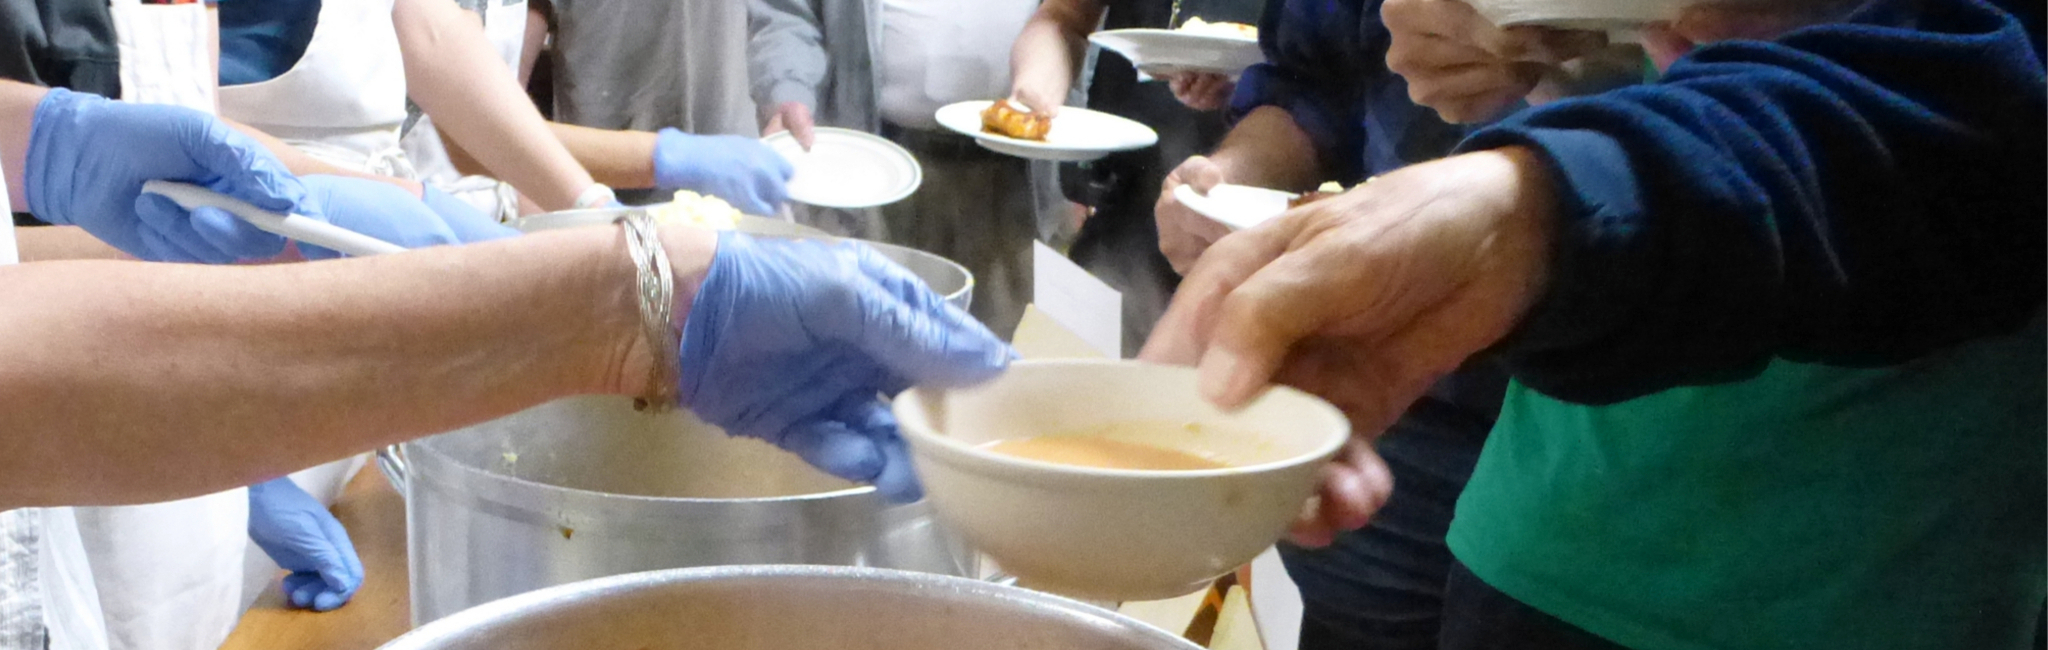 Photograph of serving soup at a CommonCare meal at Saint Peter's Episcopal Church